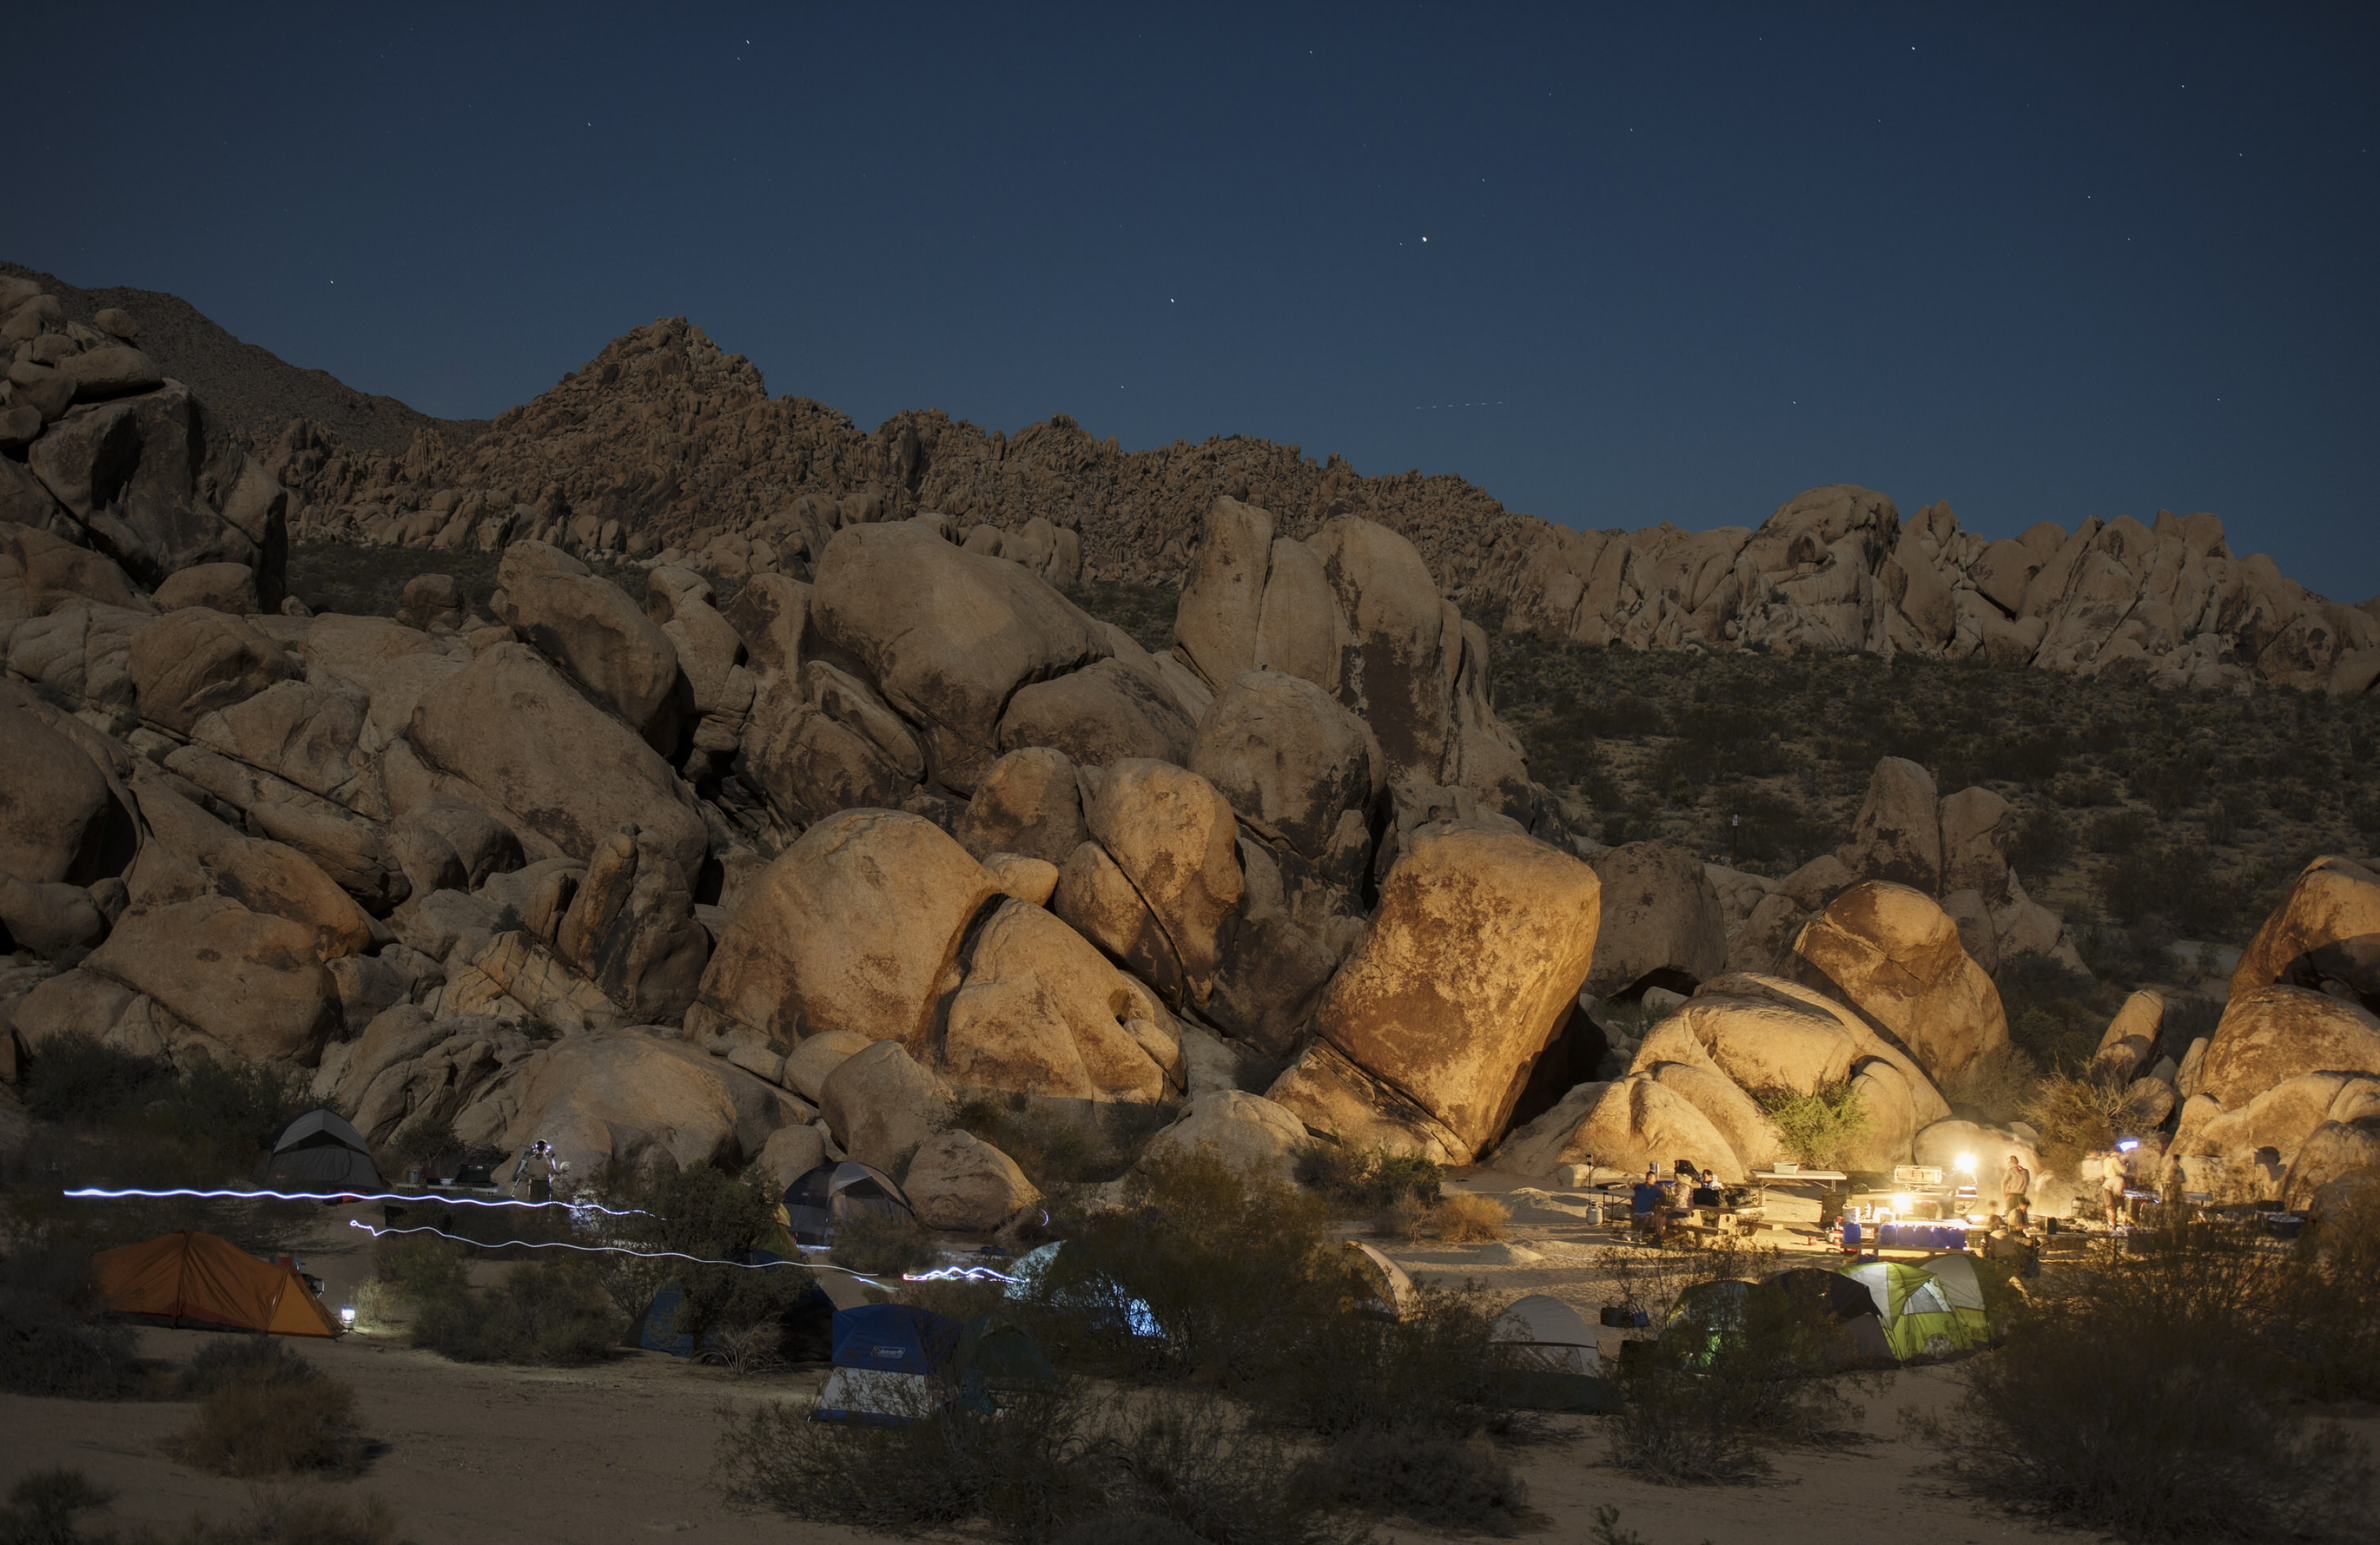 joshua tree hindu dating site There's something in the rocks beyond the top ropes and chalk stains, joshua tree's famous granite reveals its more mysterious faces.